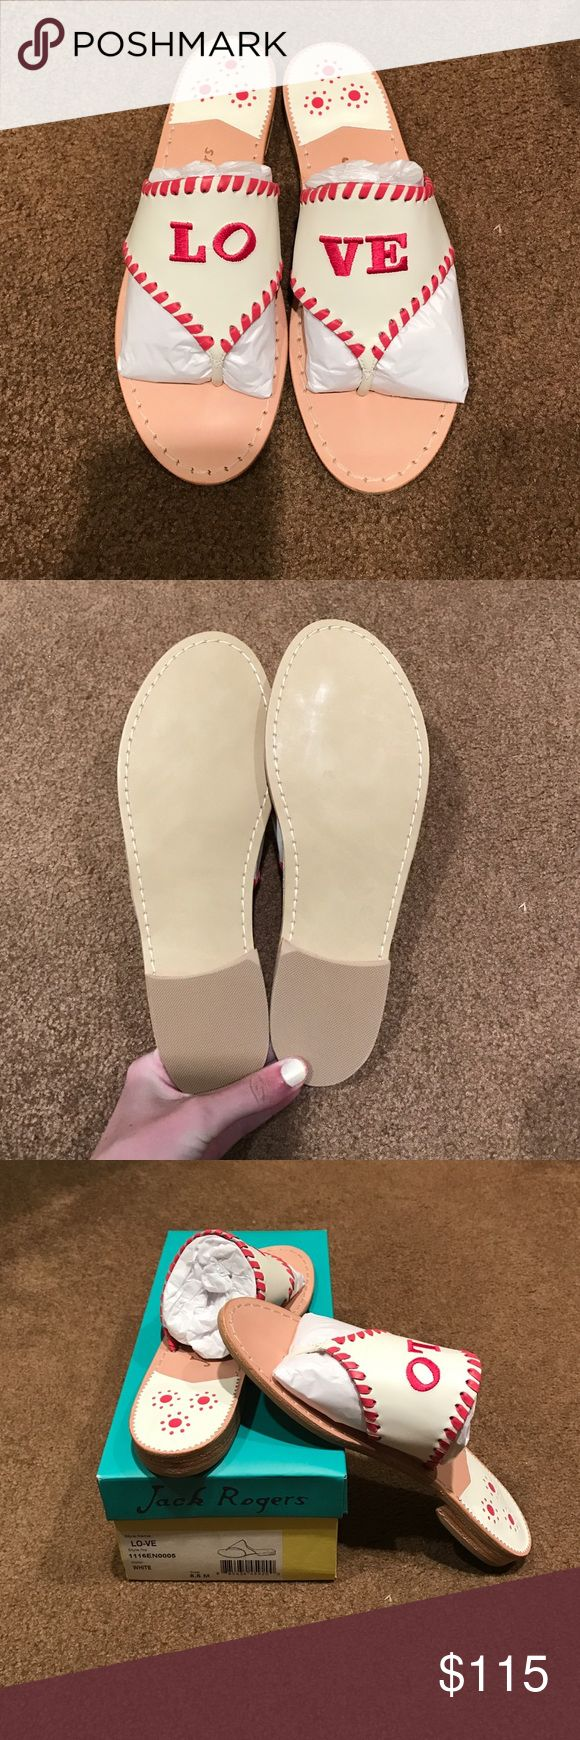 LO-VE Jack Rogers Sandals NEW IN BOX!! Never worn, perfect for Valentine's Day 💞💞 Jack Rogers Shoes Sandals